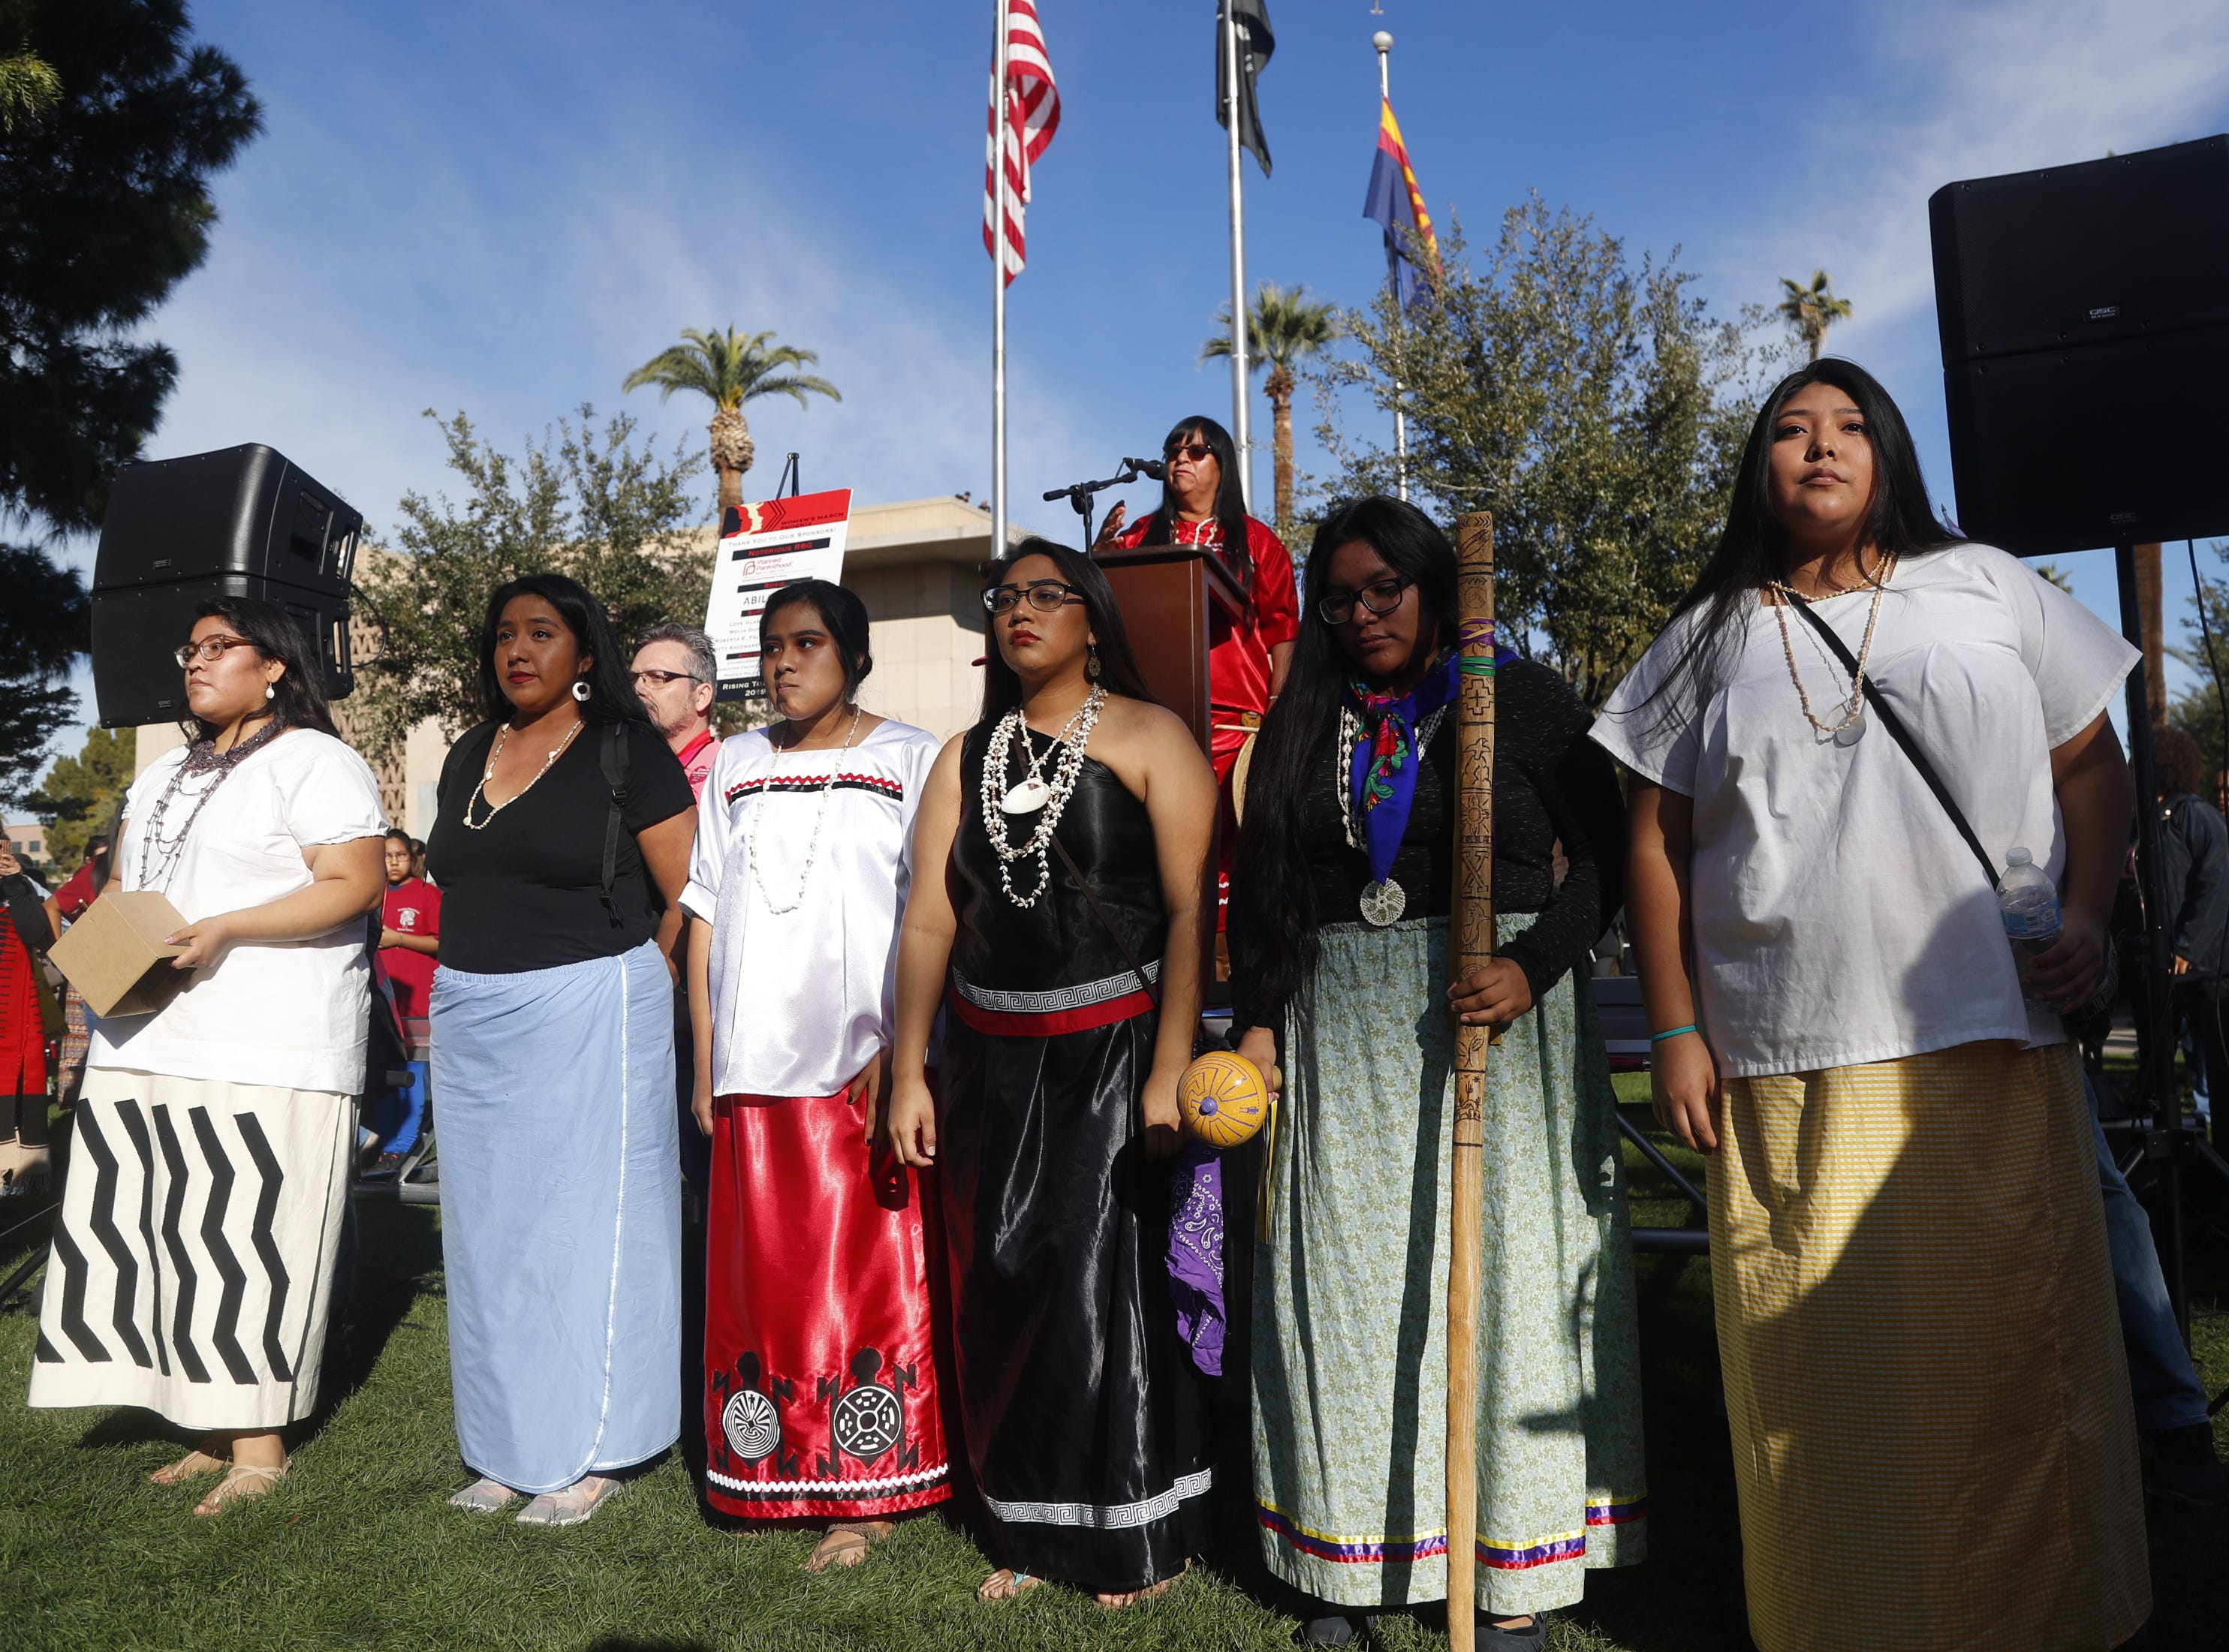 Indigenous women lead off the event with a song lead by Pamela Thompson during the Women's March outside the Arizona Capitol in Phoenix, Jan. 19, 2019.